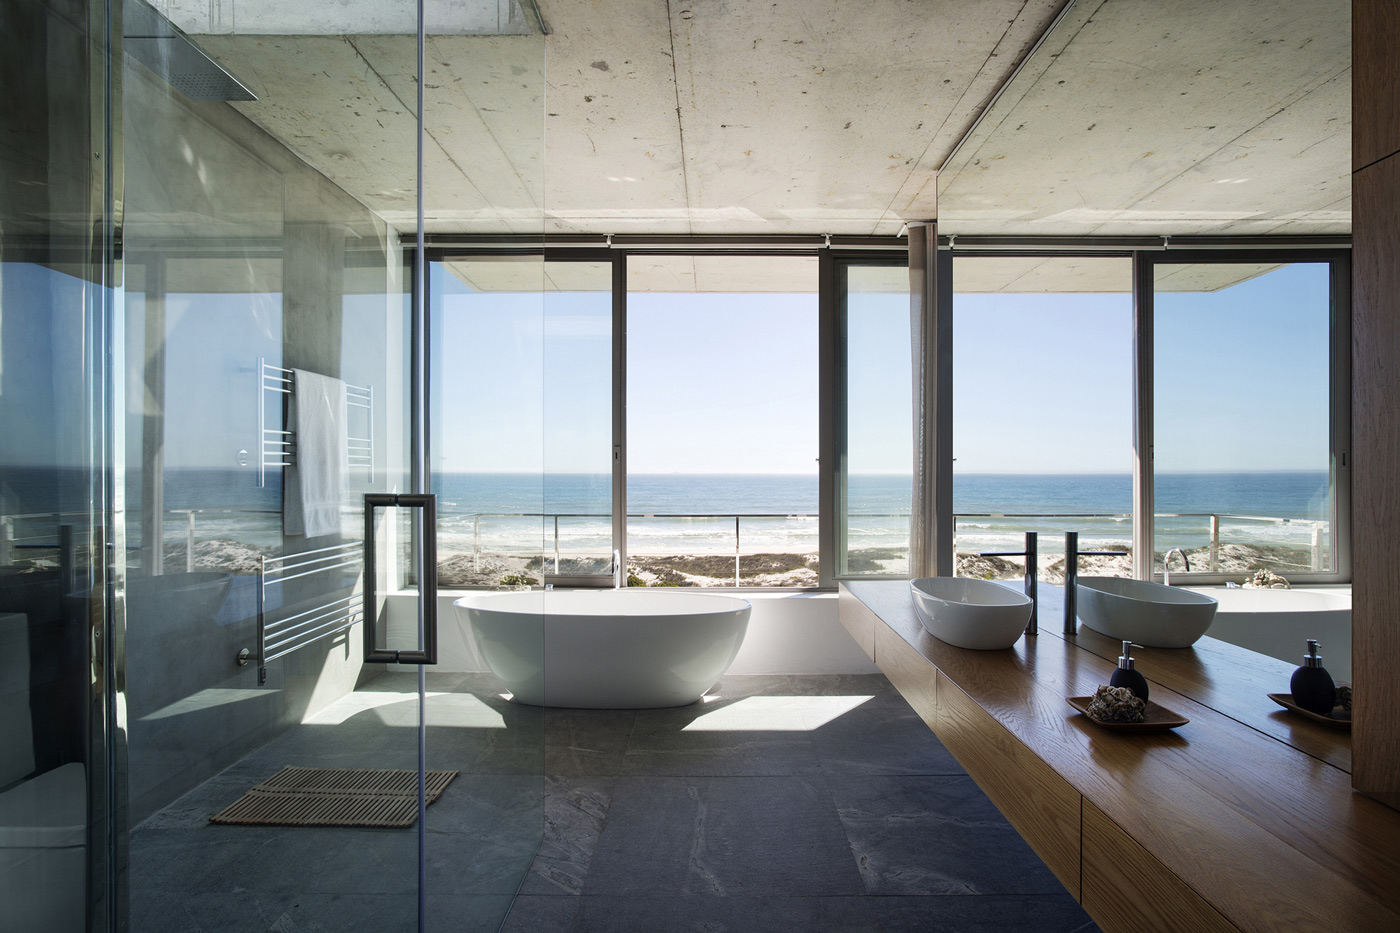 Modern Bathroom, Holiday Home in Yzerfontein, South Africa